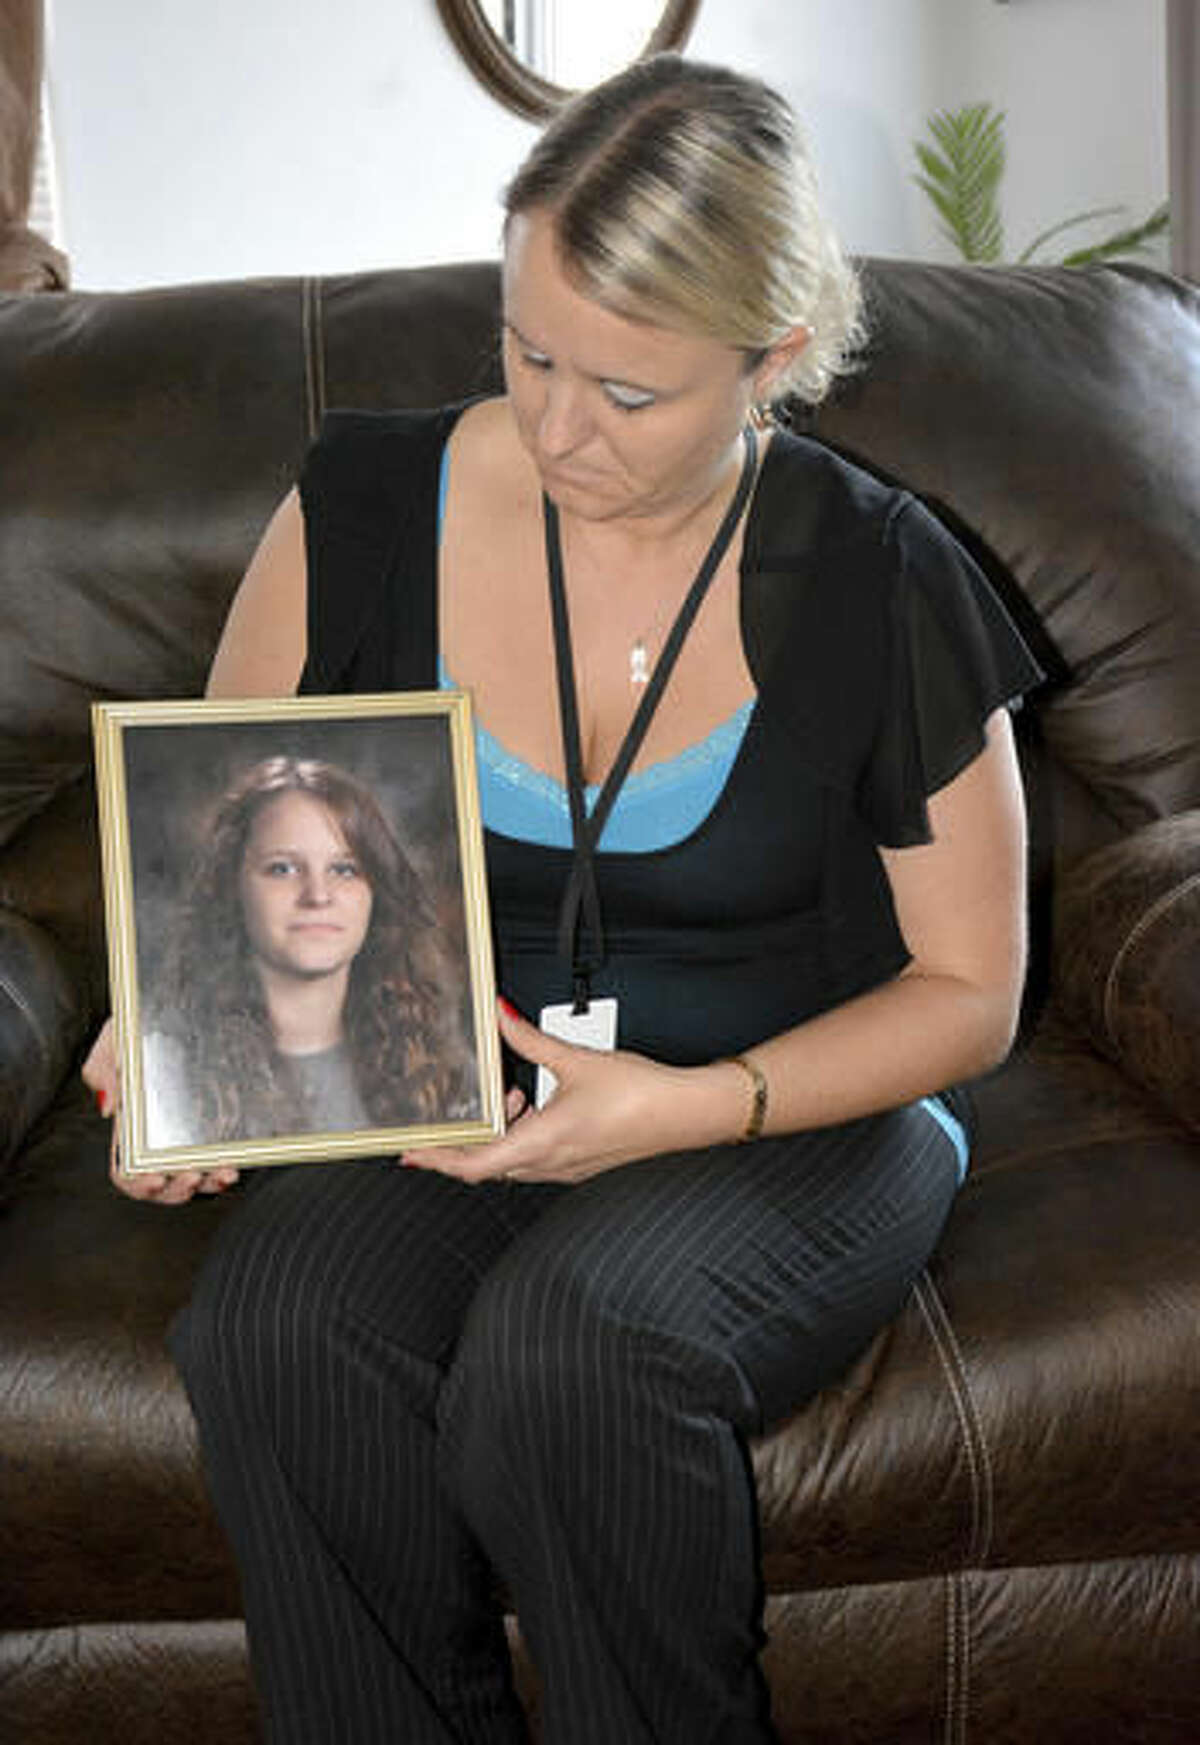 In this Oct. 13, 2016 photo, Crystal Gonzalez holds a picture of her daughter, Kaylee Jacob, at her home in Effingham, Ill. Jacob was 16 when a teenage friend messing around with a gun in the backseat of a car parked in Effingham, Ill., accidentally shot her to death in 2015. Nearly a year later, the girl's mother said the pain still lingers,and she knows that it always will.